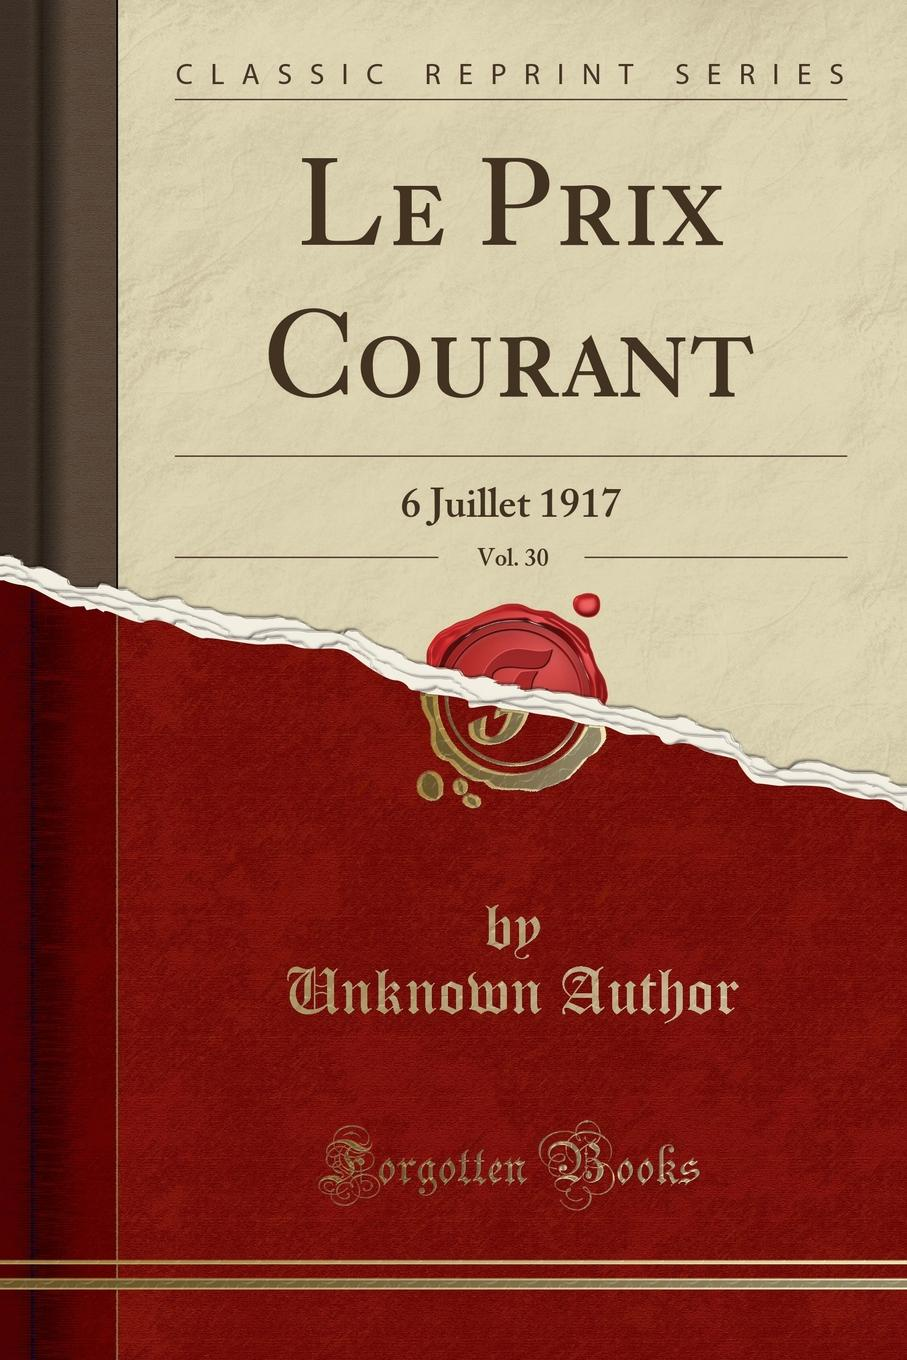 Unknown Author Le Prix Courant, Vol. 30. 6 Juillet 1917 (Classic Reprint) fear agent vol 6 2nd edition